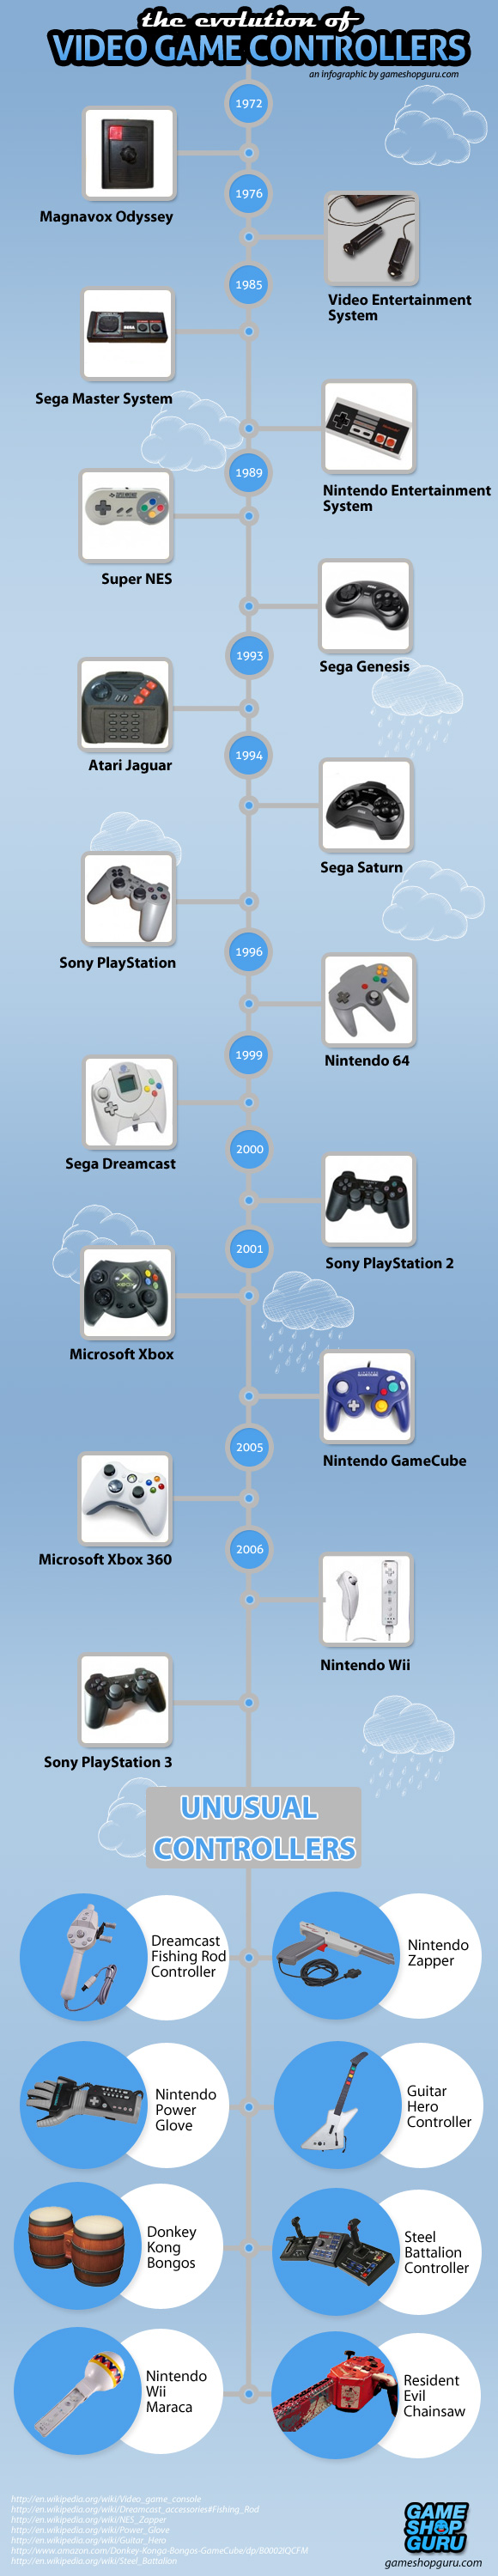 evolution-of-video-game-controllers-infographic